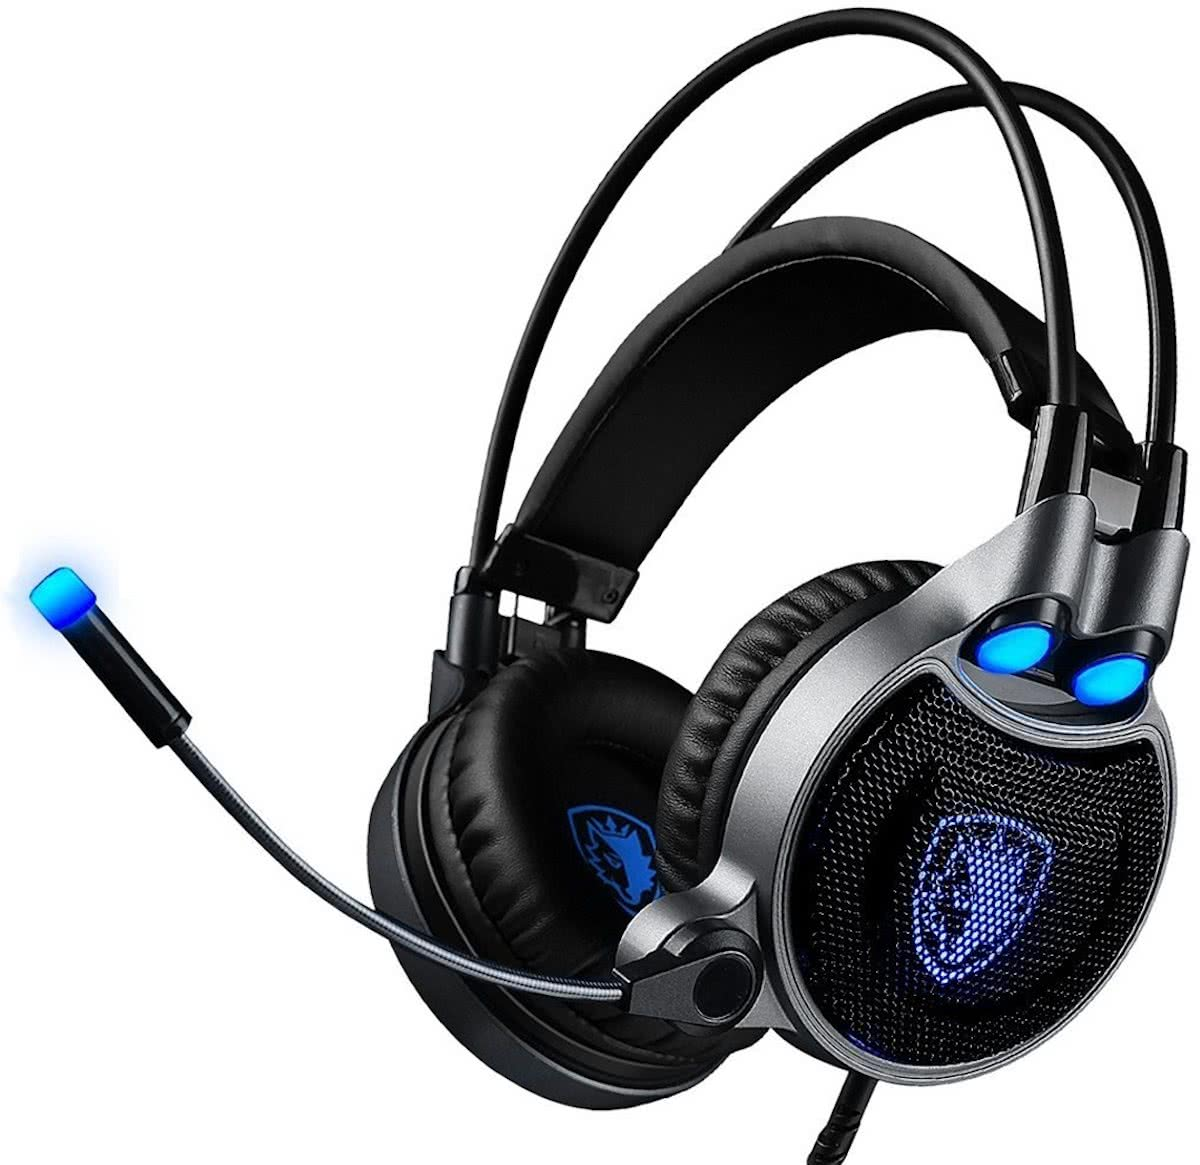 SADES R1 USB Gaming Headset 7.1 Channel Wired hoofdtelefoon met Wire Control + Mic + licht voor PC, Laptop (Black+Blue)